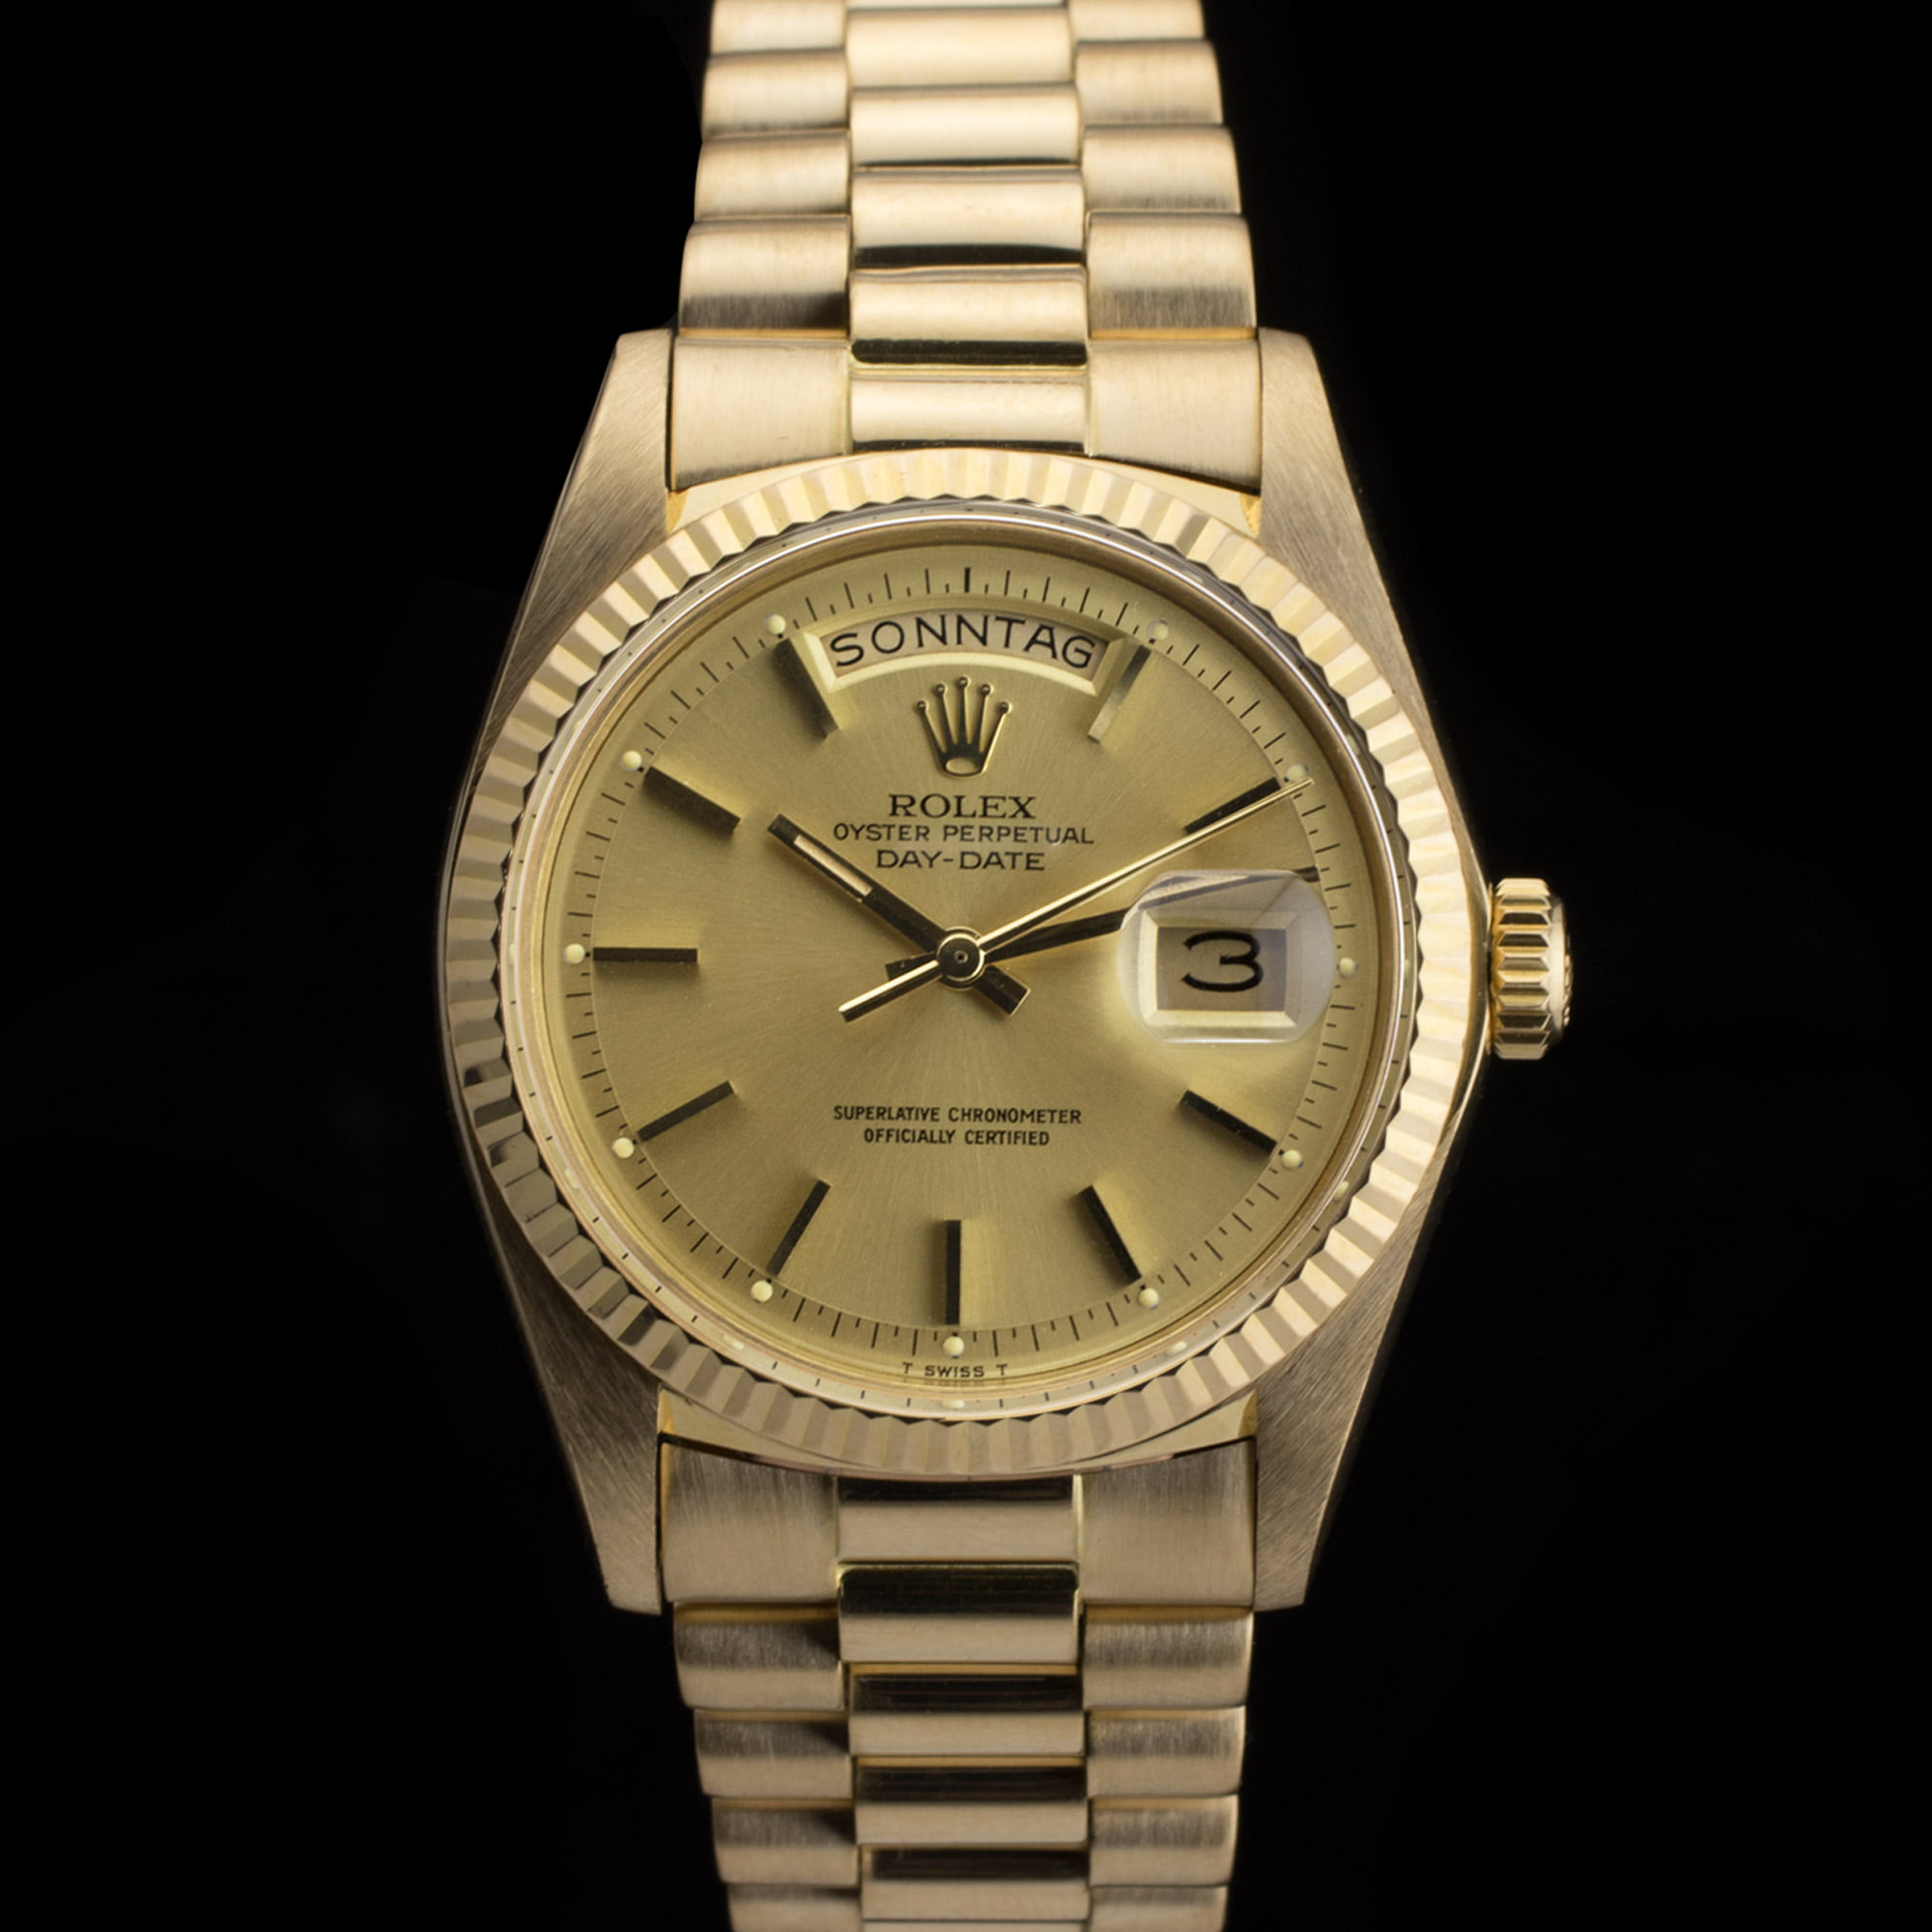 Rolex Oyster Perpetual Day Date Gold And Silver